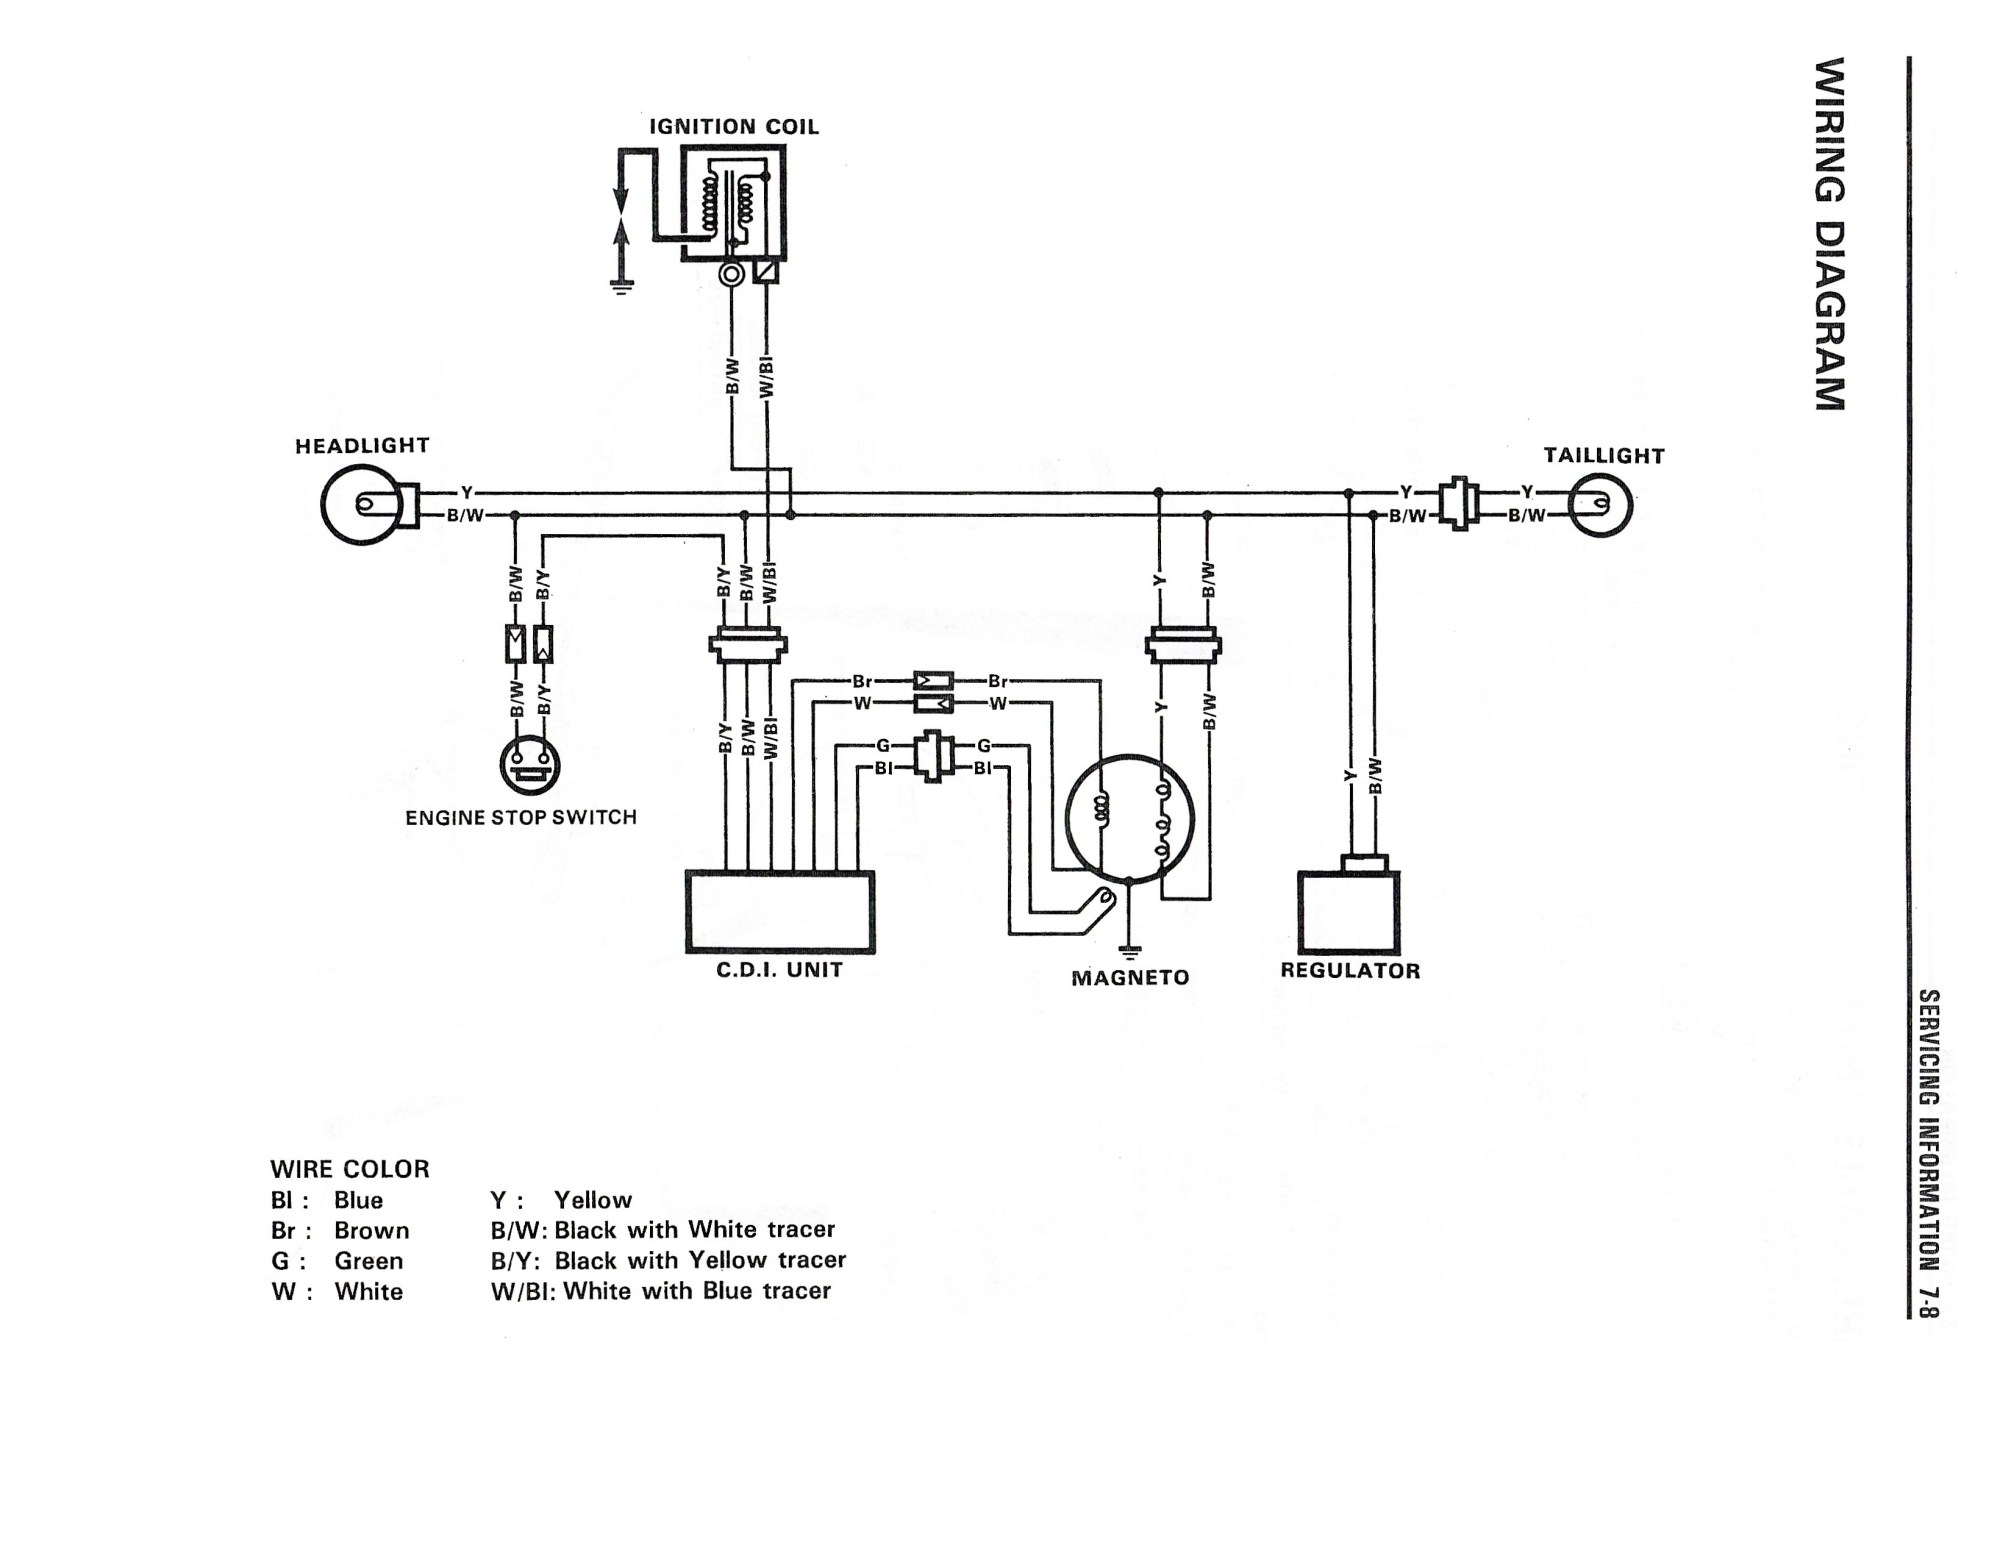 hight resolution of wiring diagram for the dr350 1990 and later models suzuki parts basic wiring suzuki